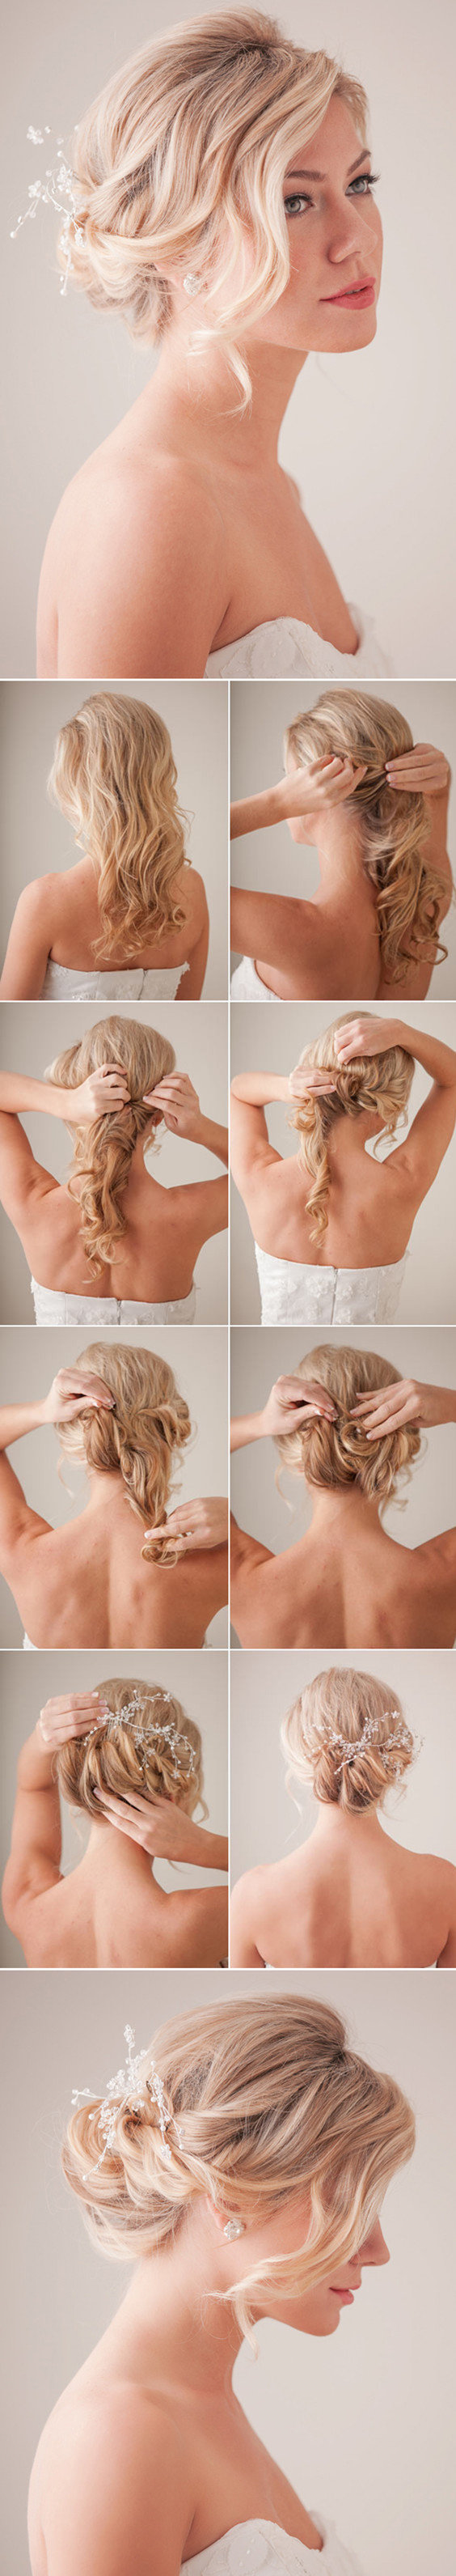 diy wedding updo hairstyles with tutorial